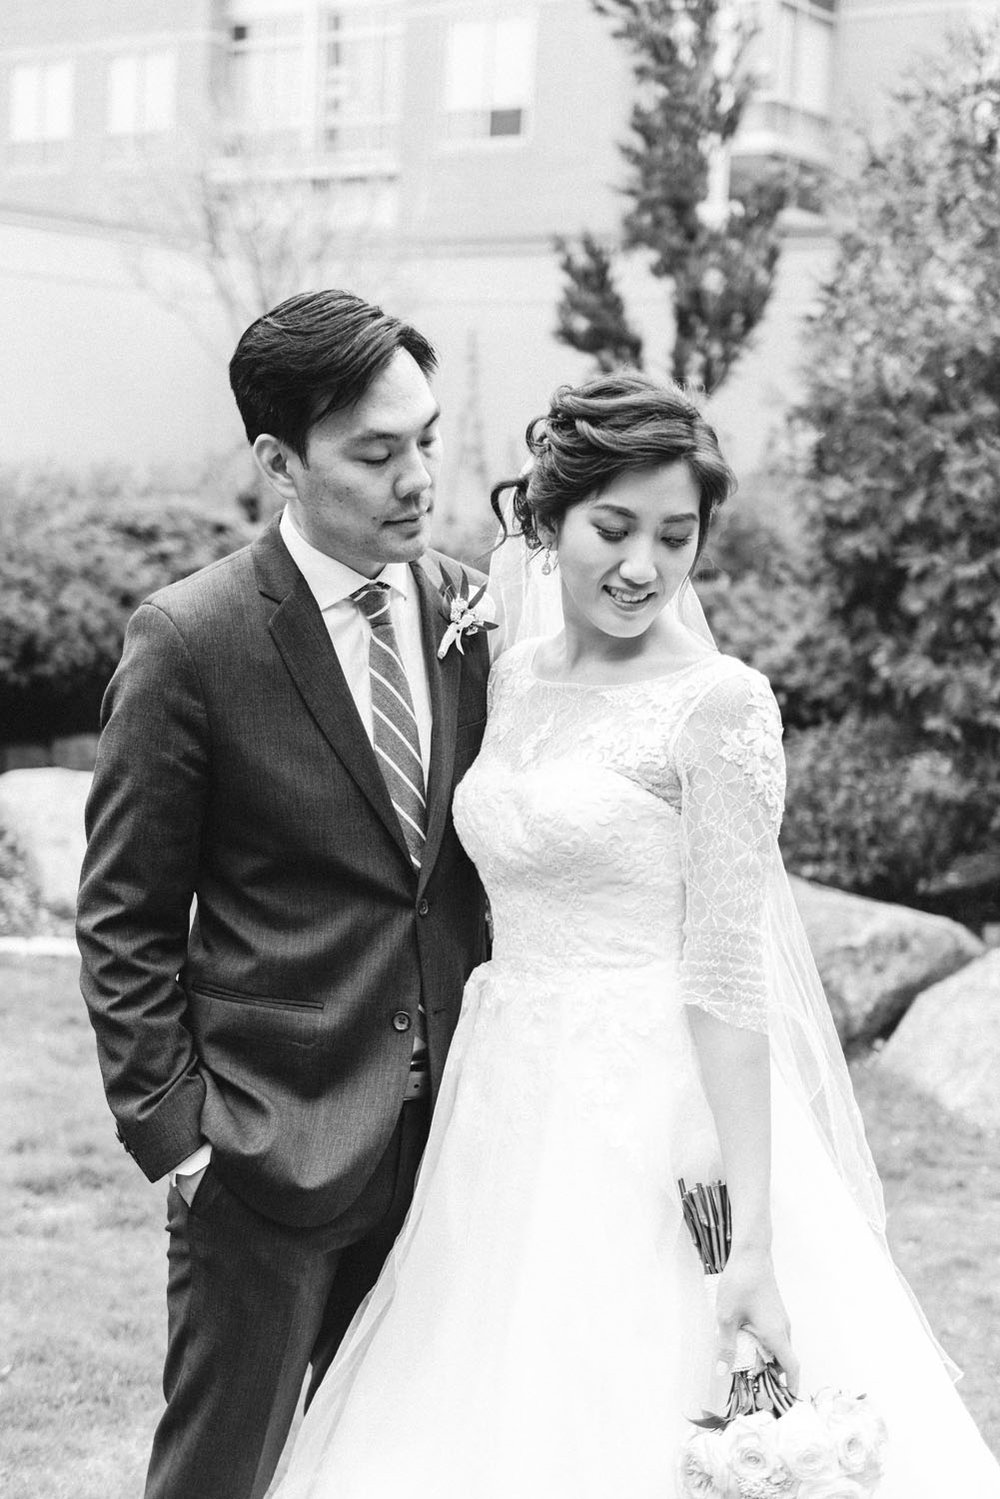 Phoebe + Jeffrey | Joyful Cambridge & Boston Spring Wedding | Boston and New England Wedding Photography | Lorna Stell Photo